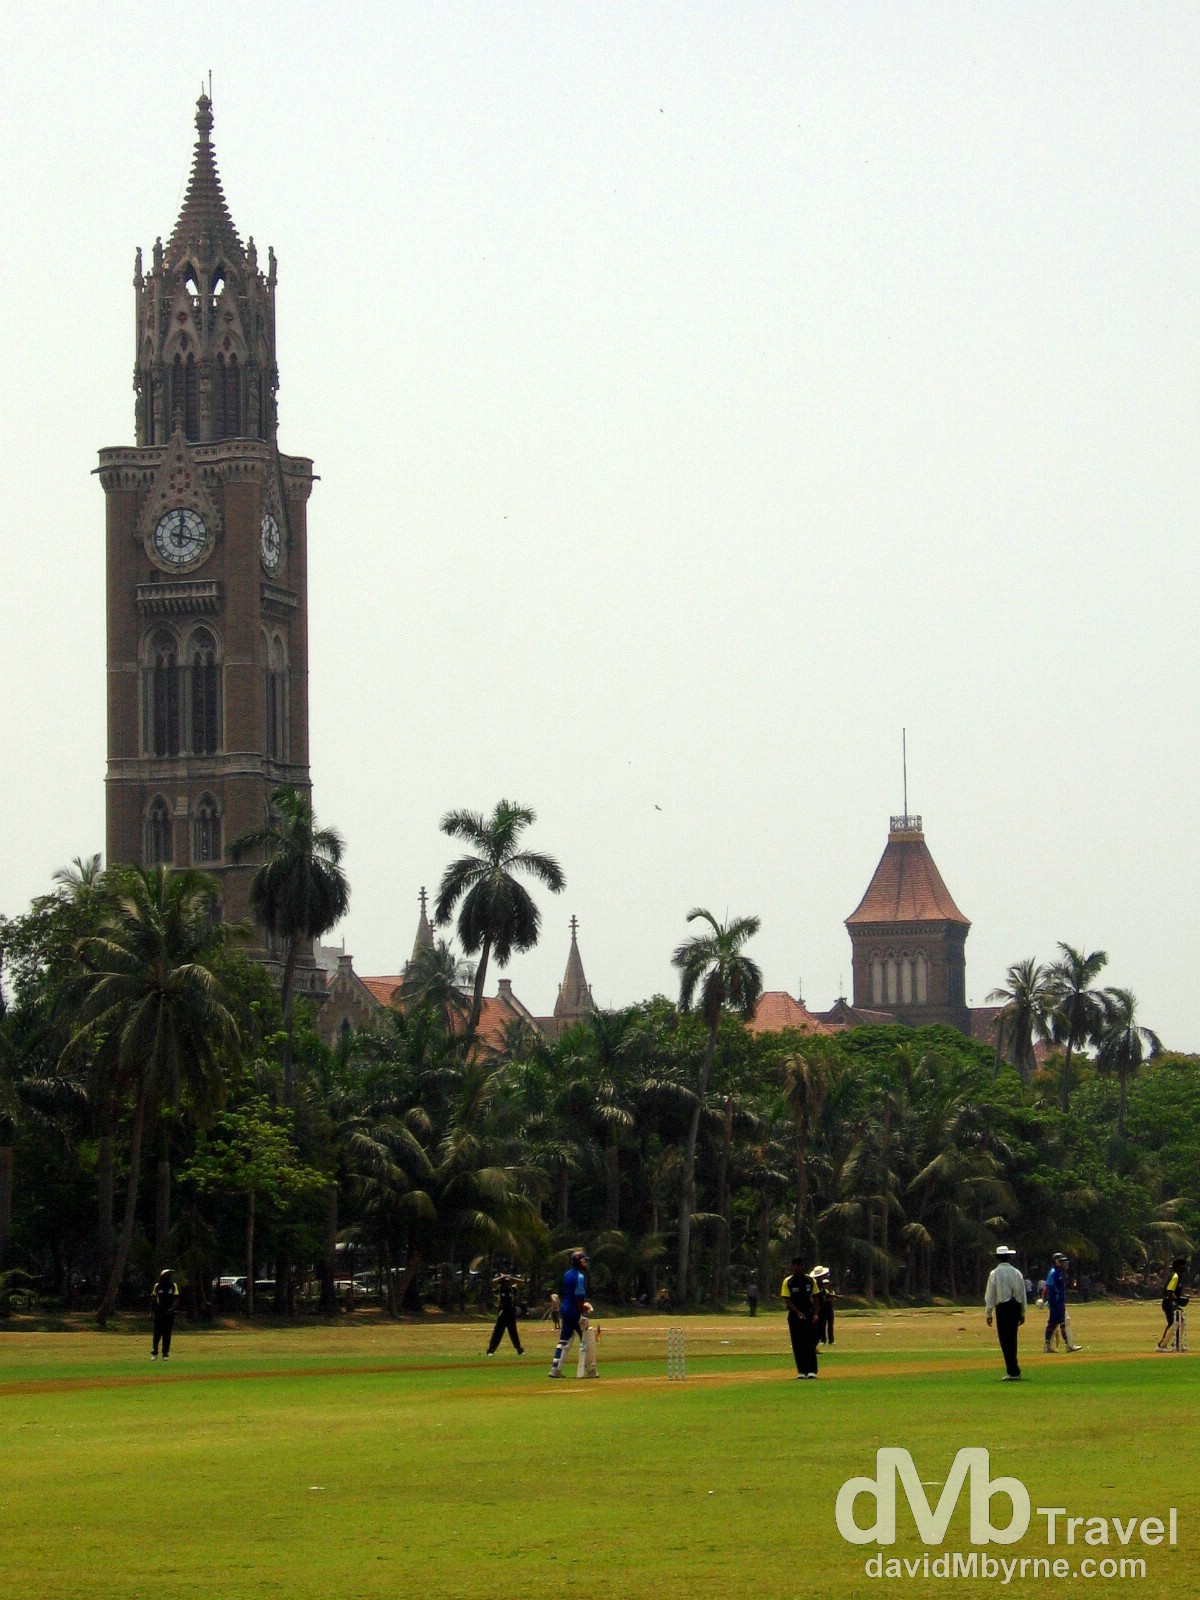 A game of cricket on the Oval Maidan in Mumbai/Bombay, Maharashtra, India. April 4, 2008.